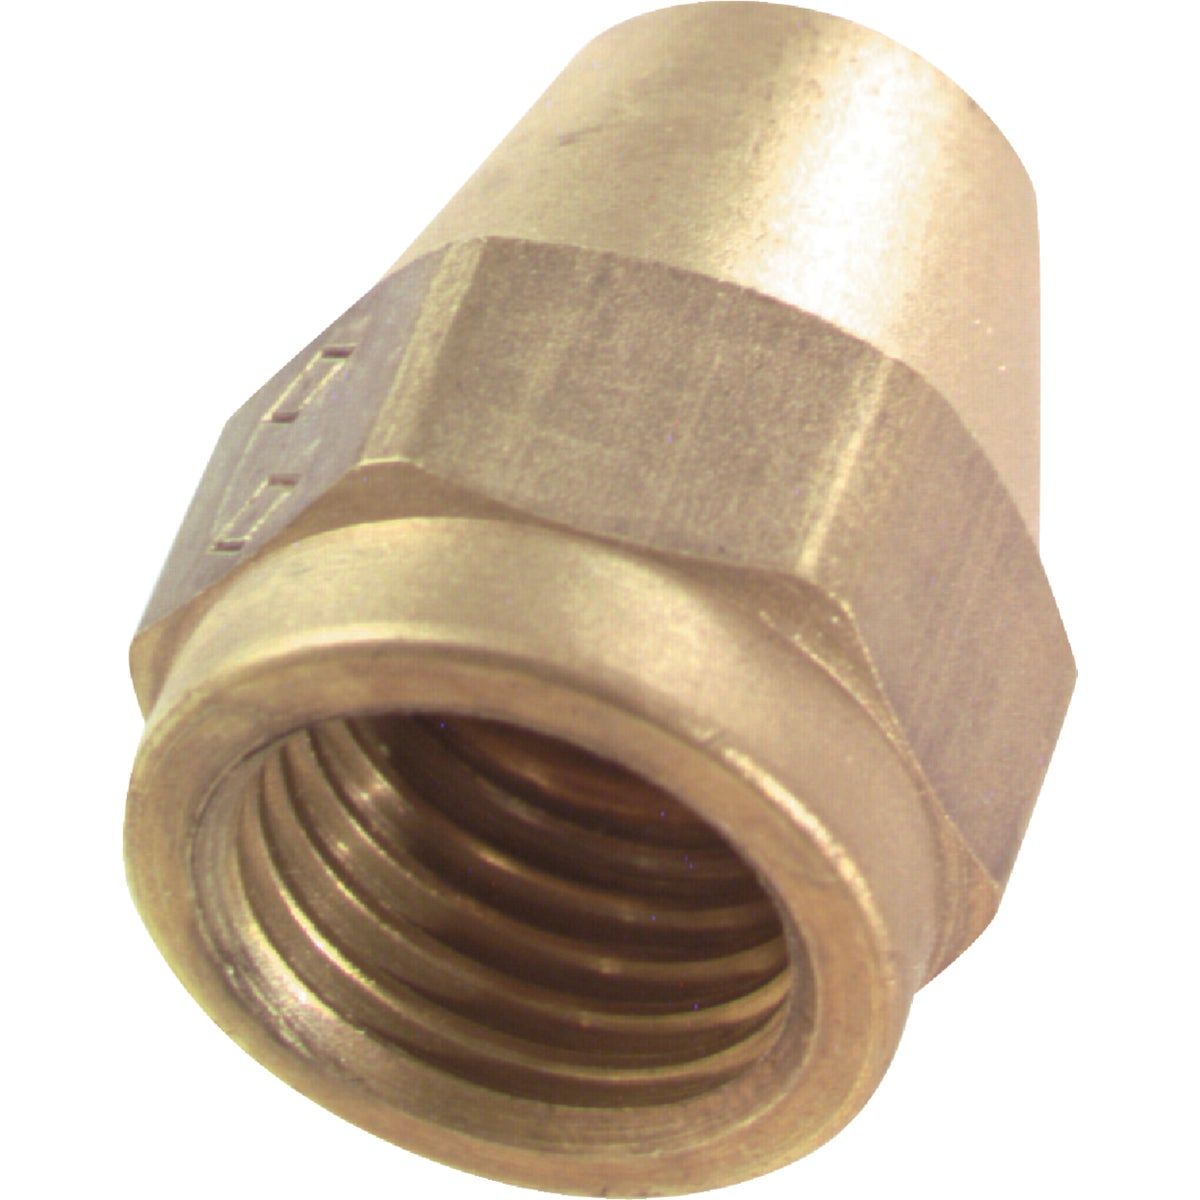 "5/8"" FLARE NUT - 458668 by Do it Best"